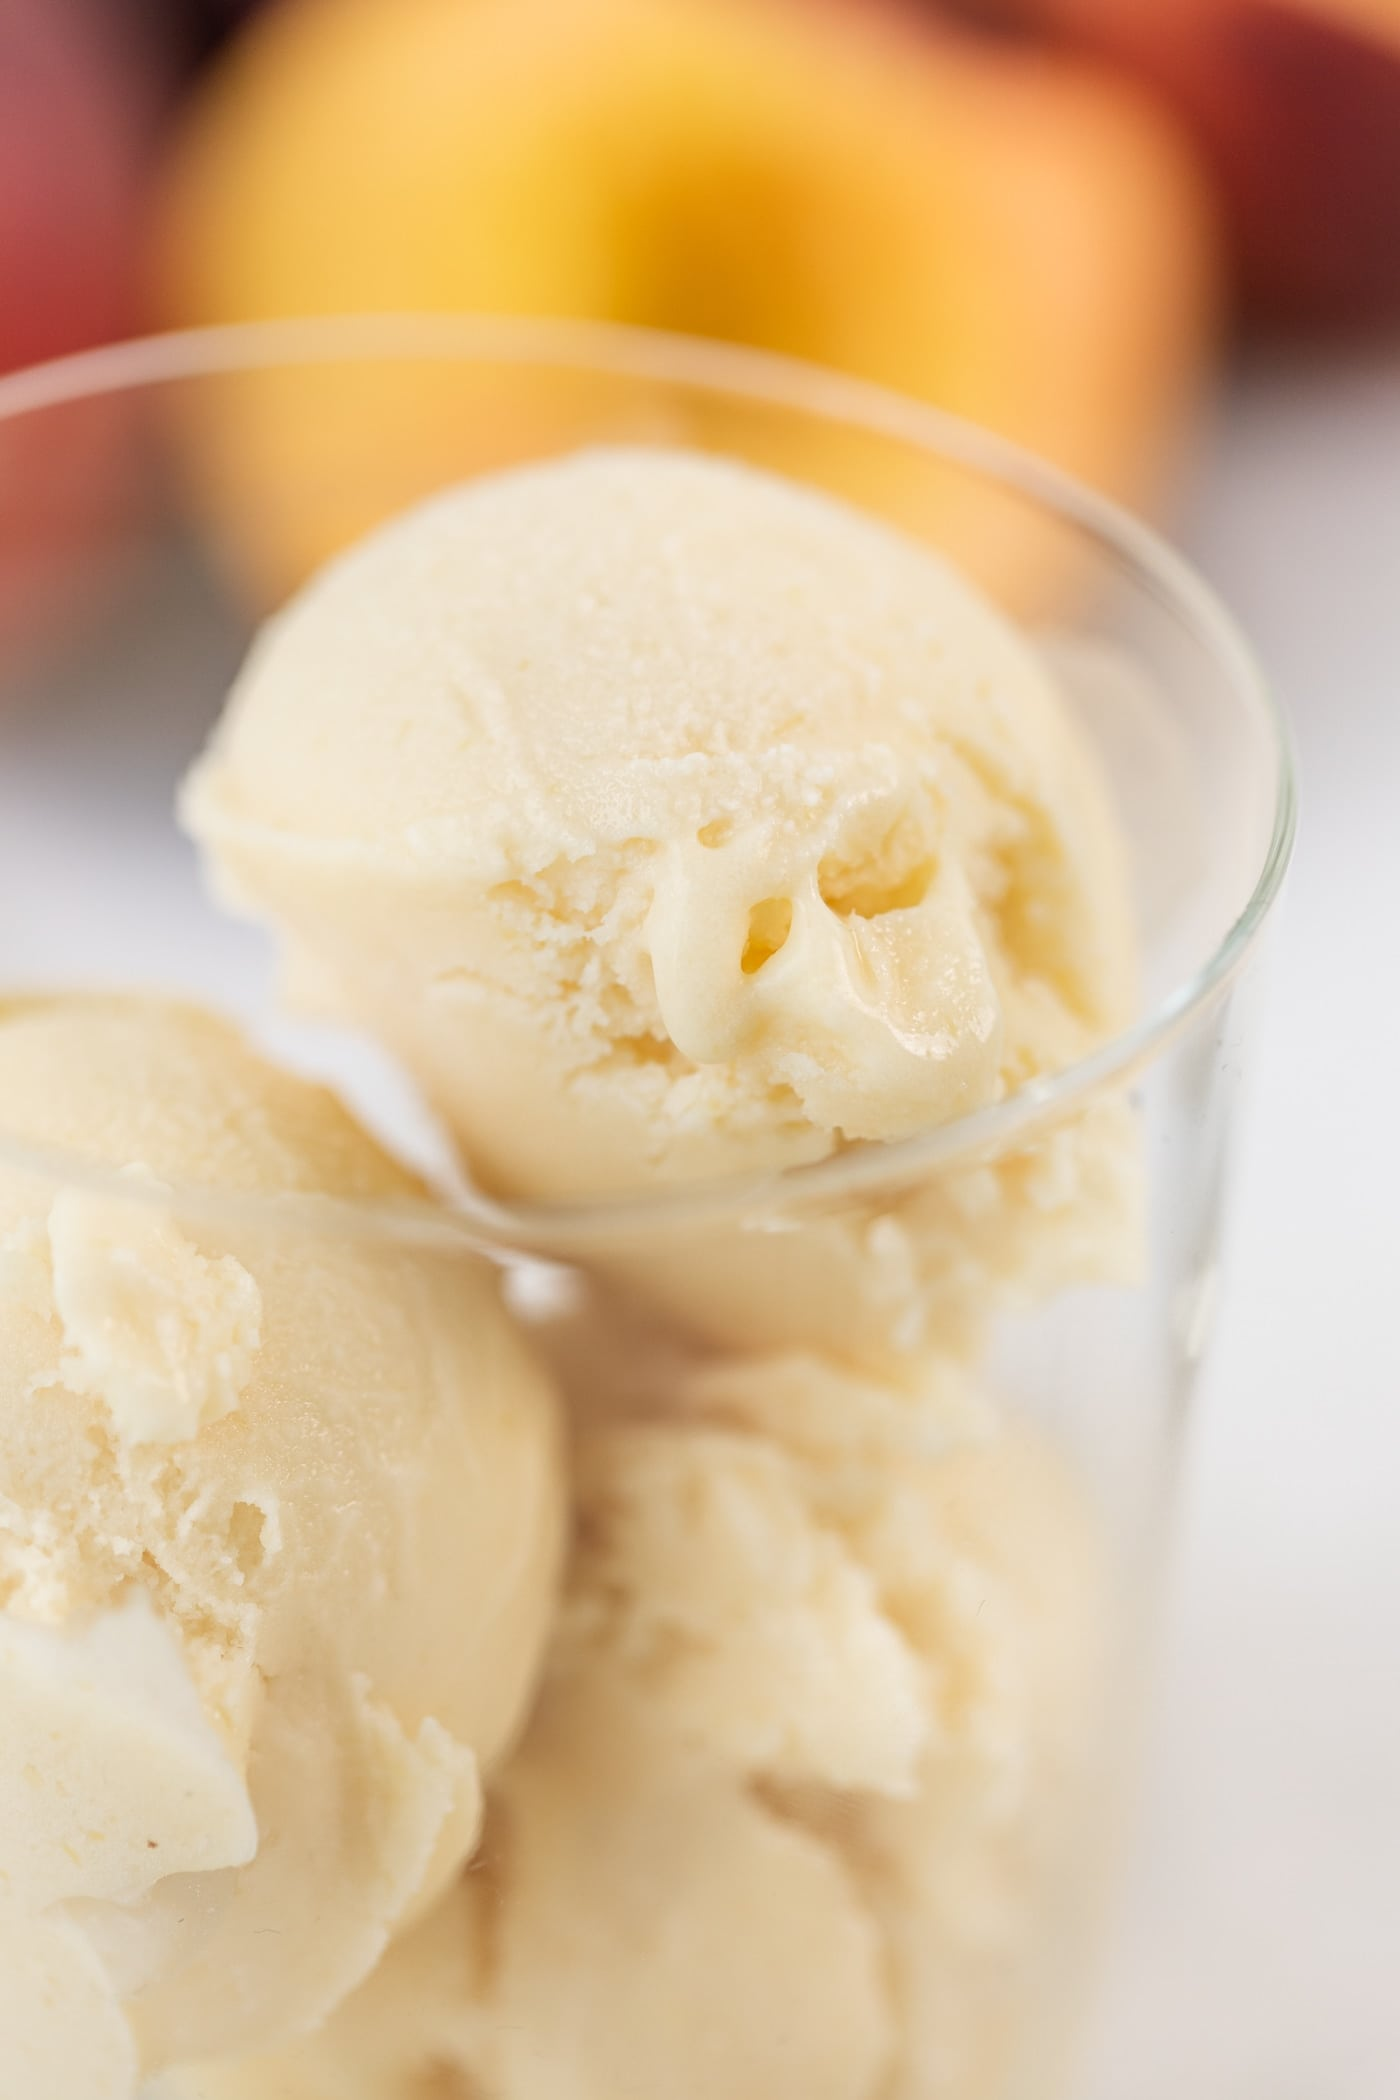 Close up view of light yellow scoops of ice cream sitting in glass with peach slices in background all on marble surface